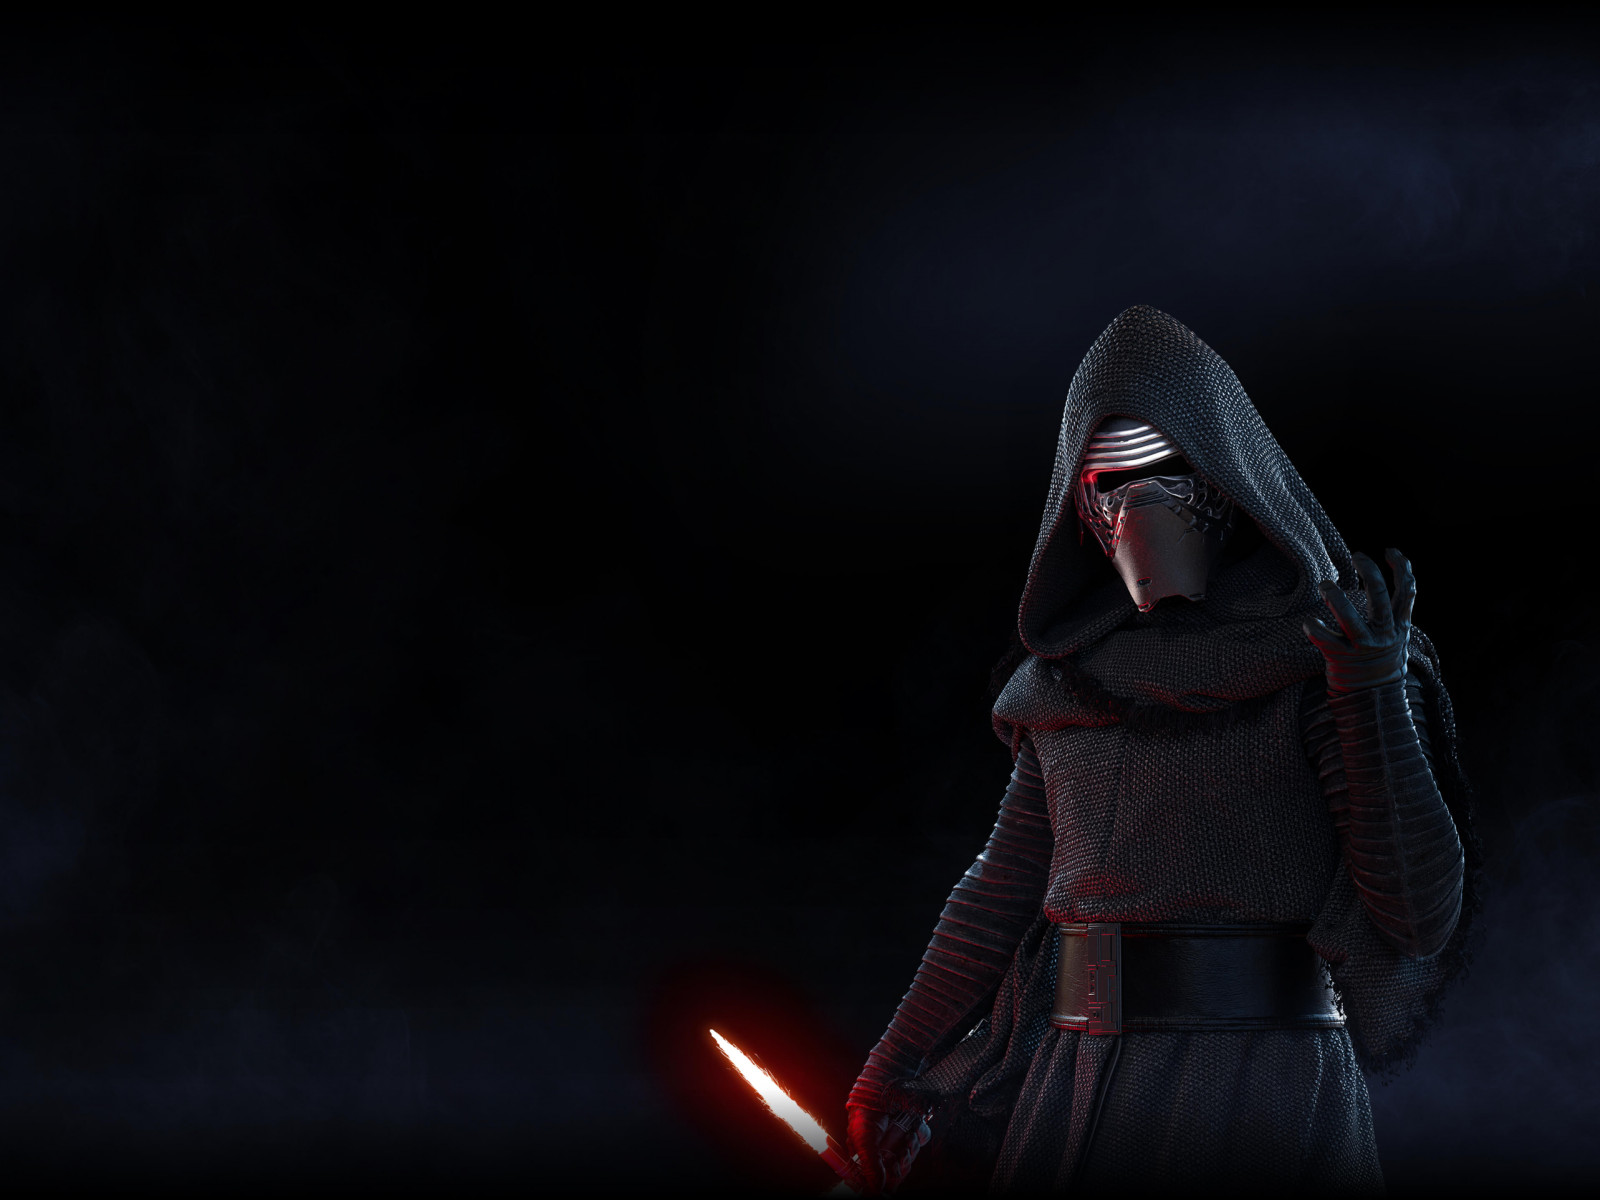 Kylo Ren from Star Wars Battlefront 2 wallpaper 1600x1200